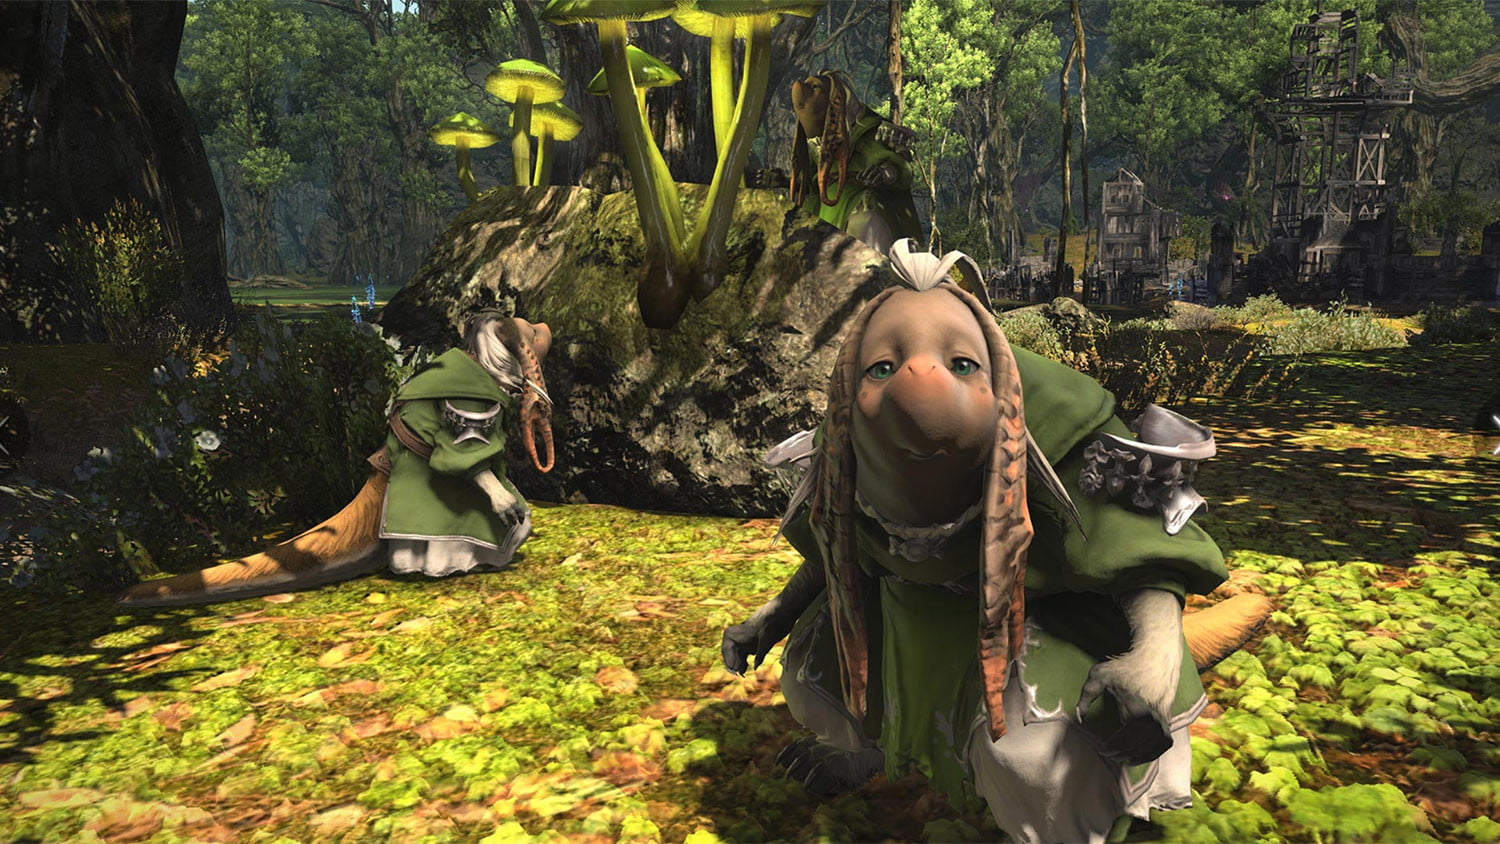 Final Fantasy XIV Shadowbringers Review: The Strongest